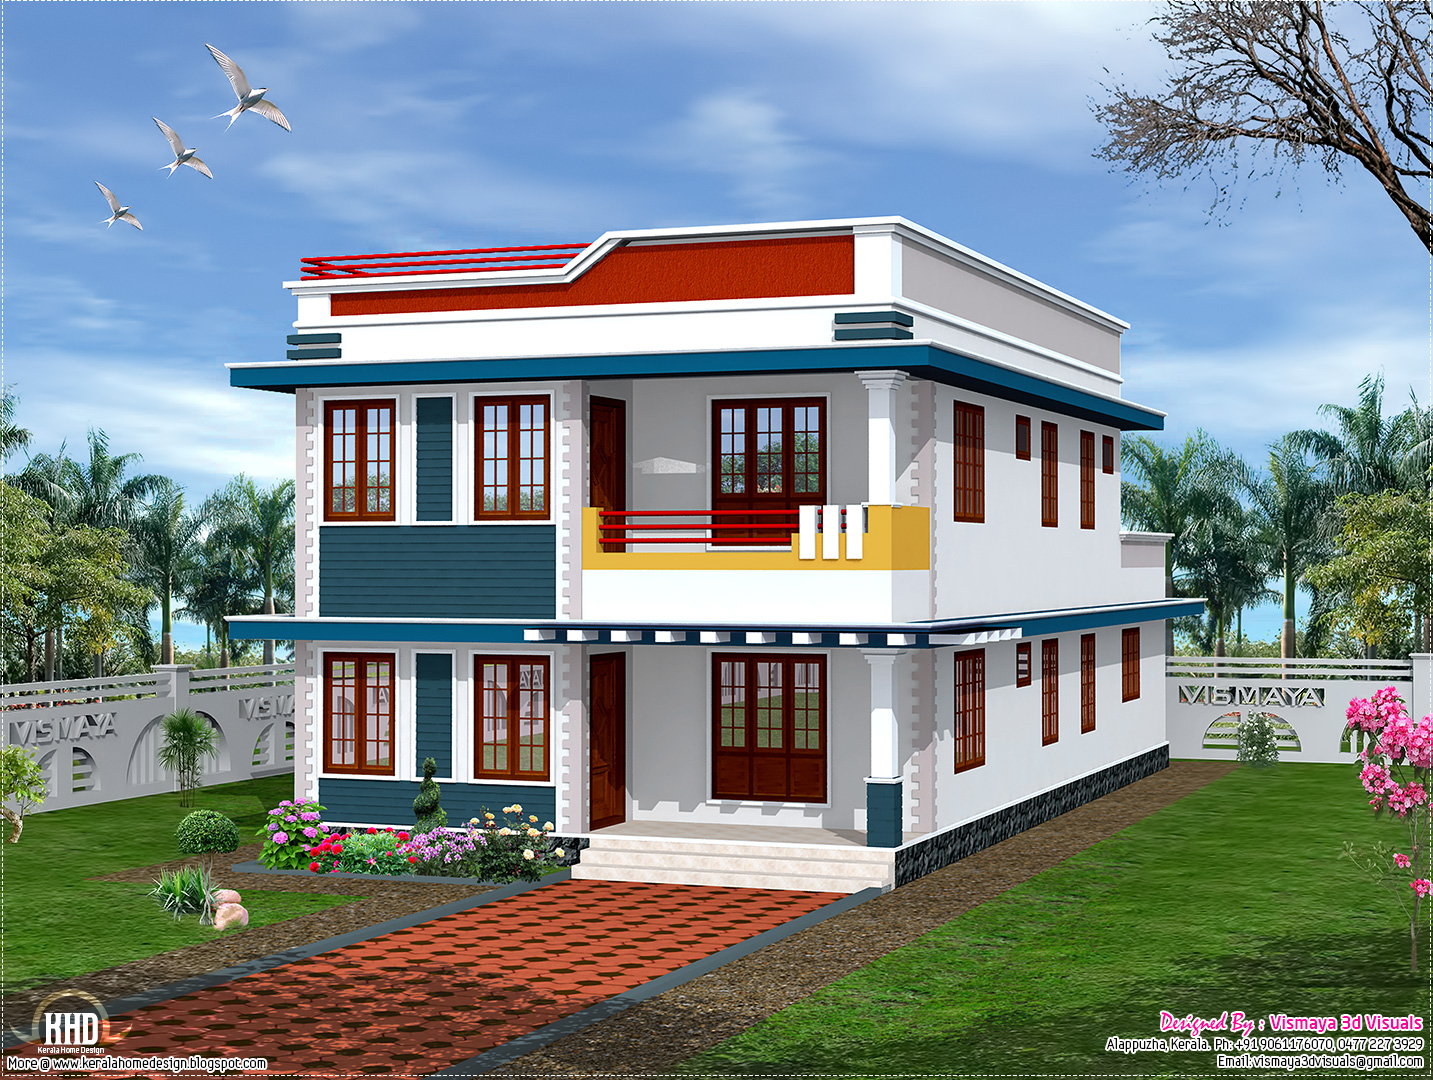 bedroom home design by vismaya 3d visuals ambalapuzha alappuzha ...